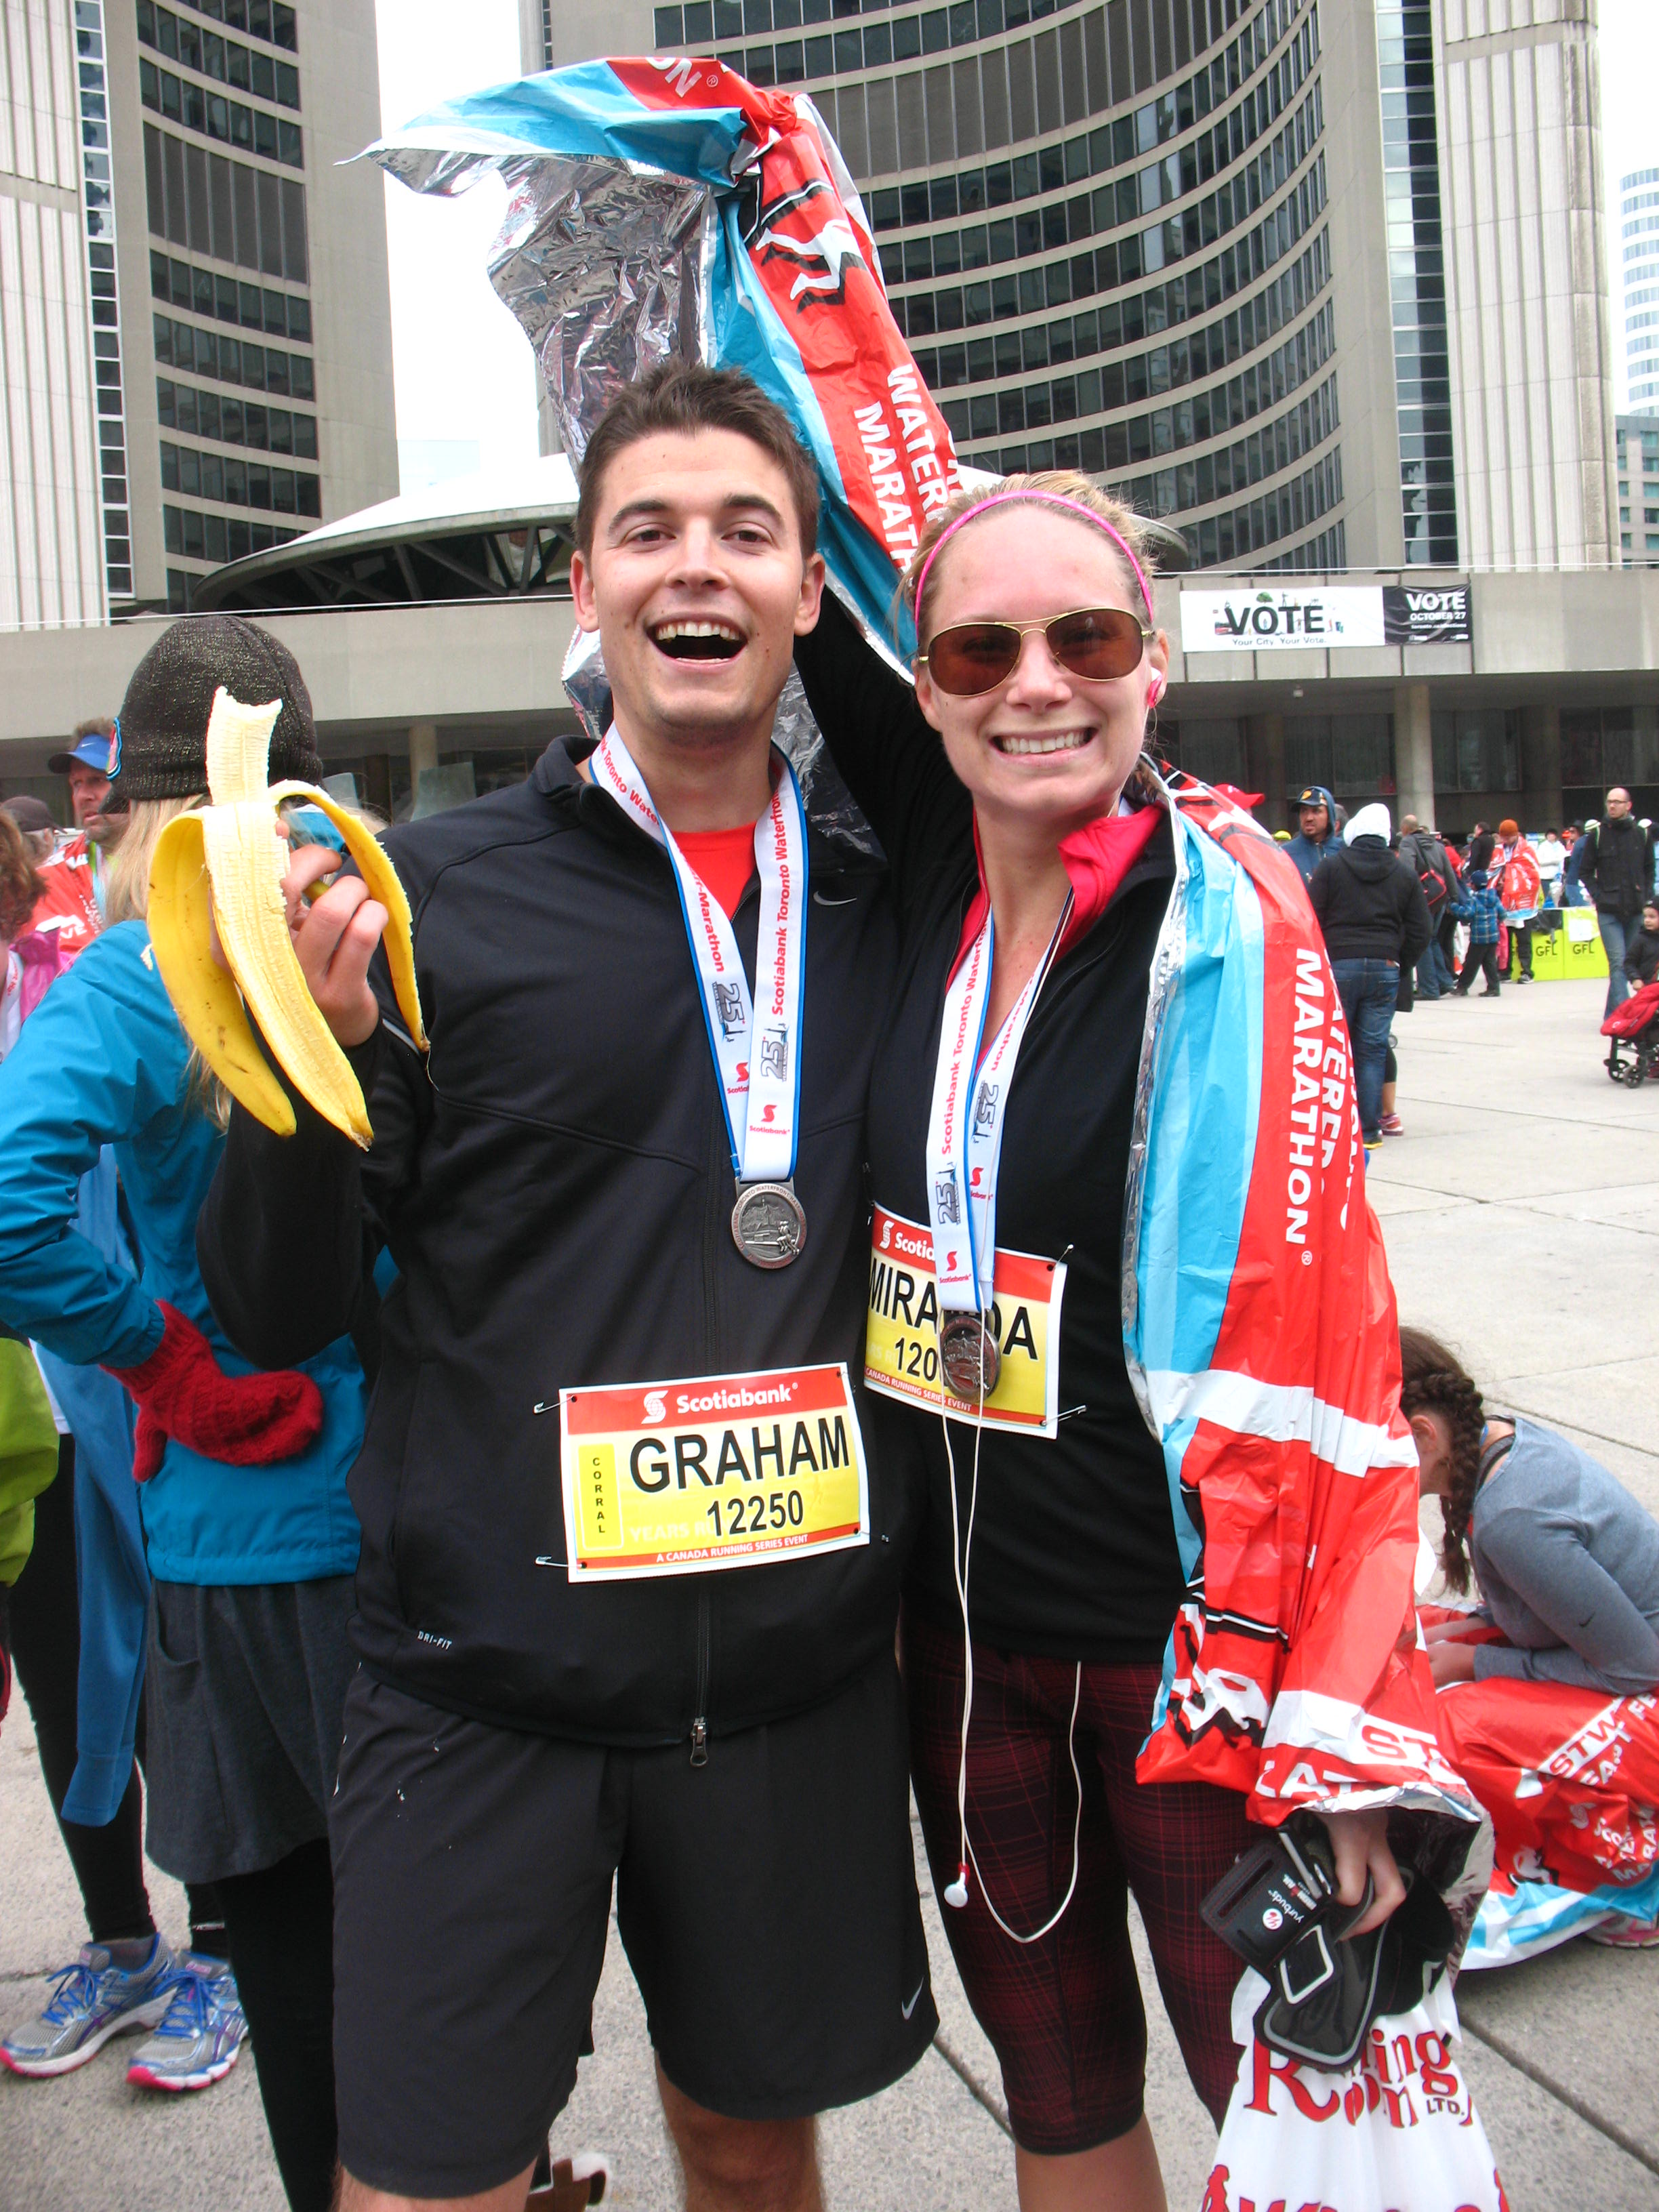 """Nothing says """"I just finished a half marathon"""" like bananas and space blankets!"""